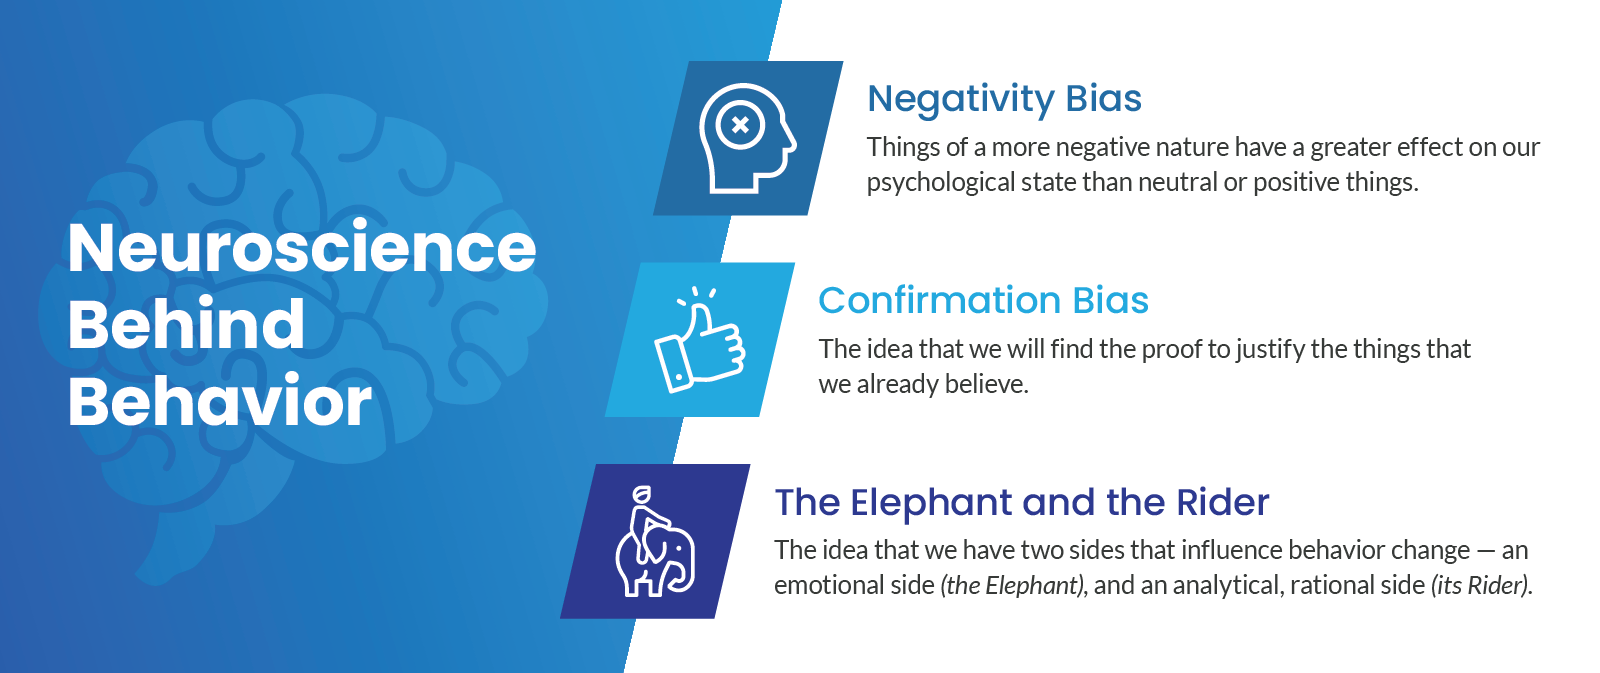 3 cognitive biases